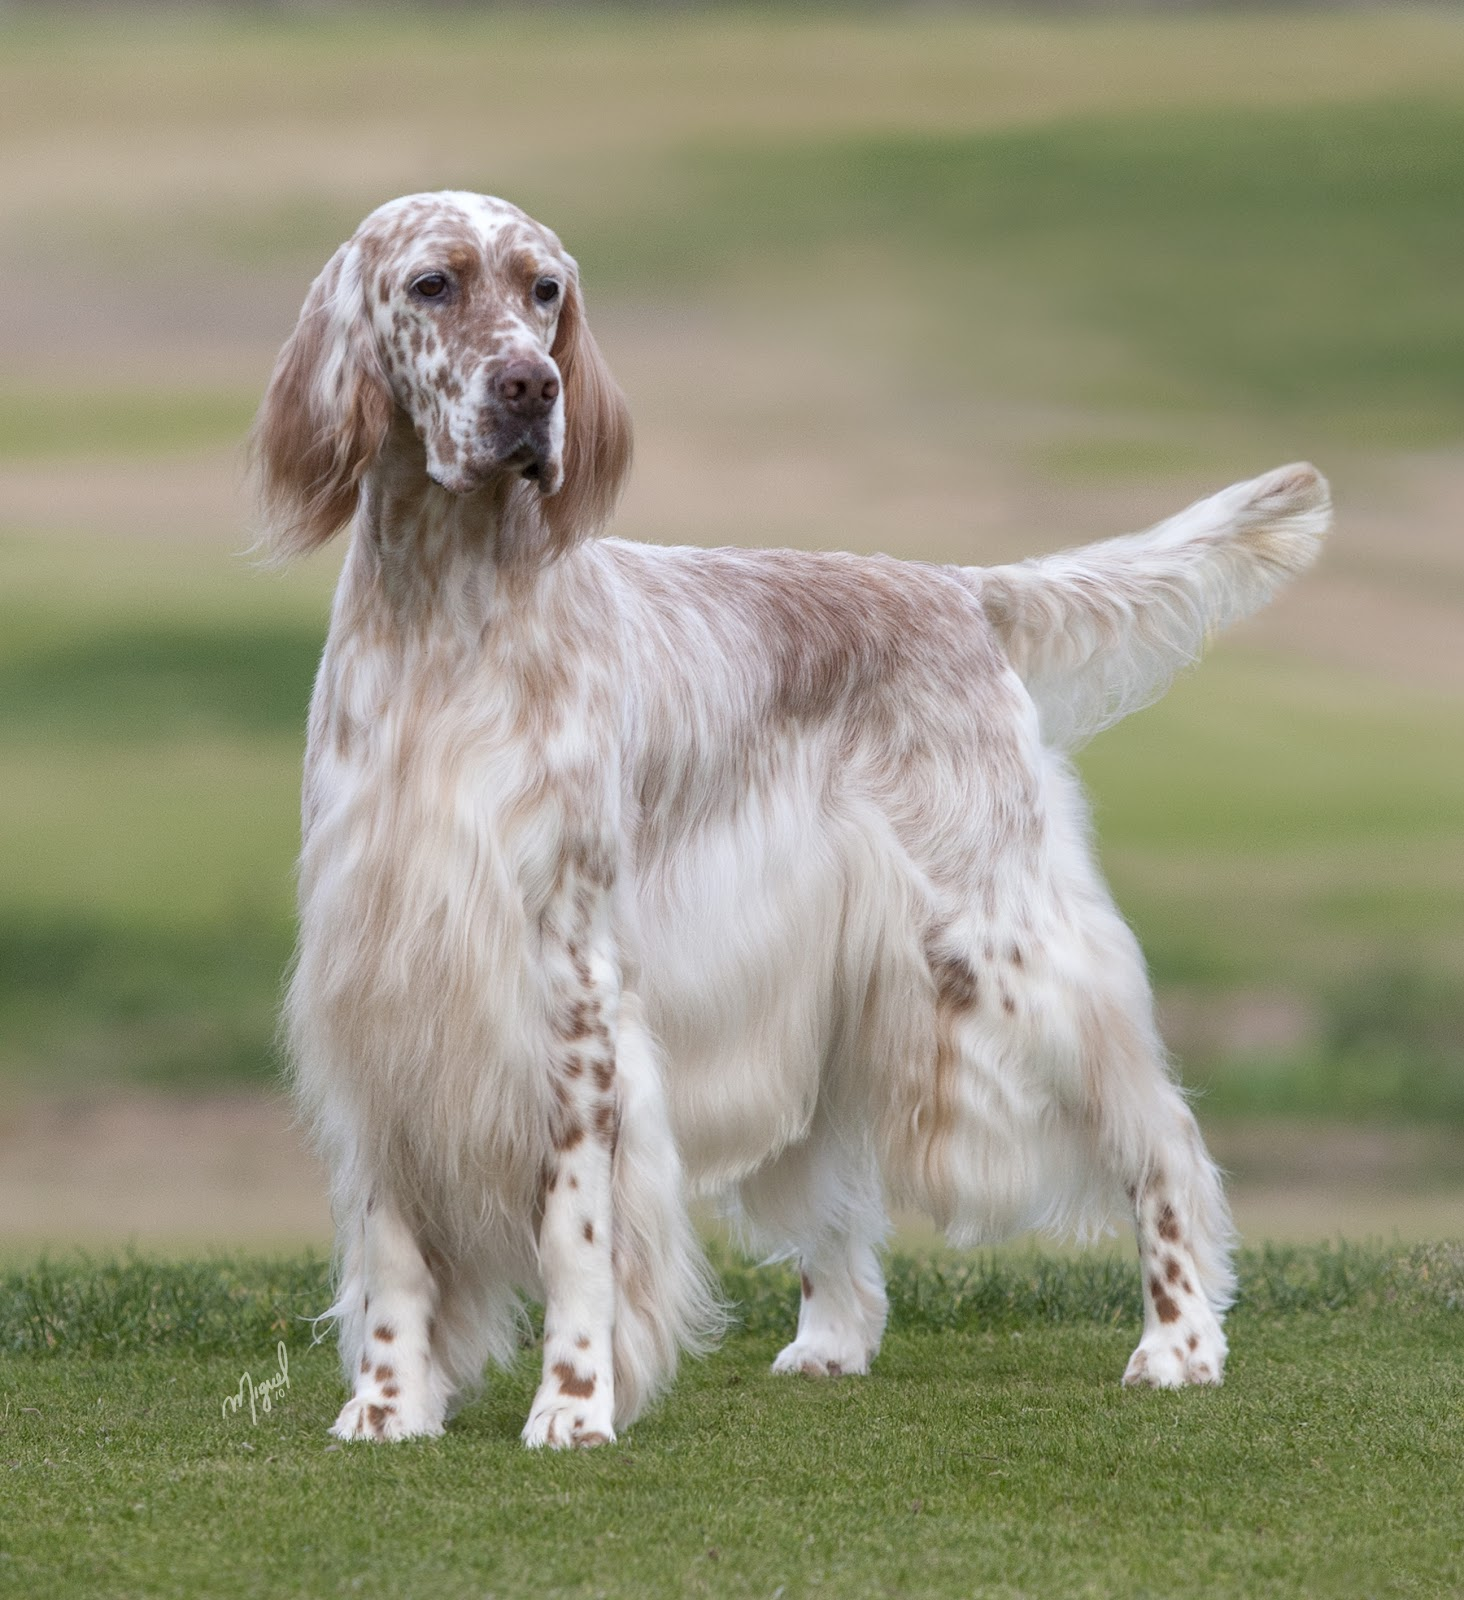 Bonny English Setter dog wallpaper